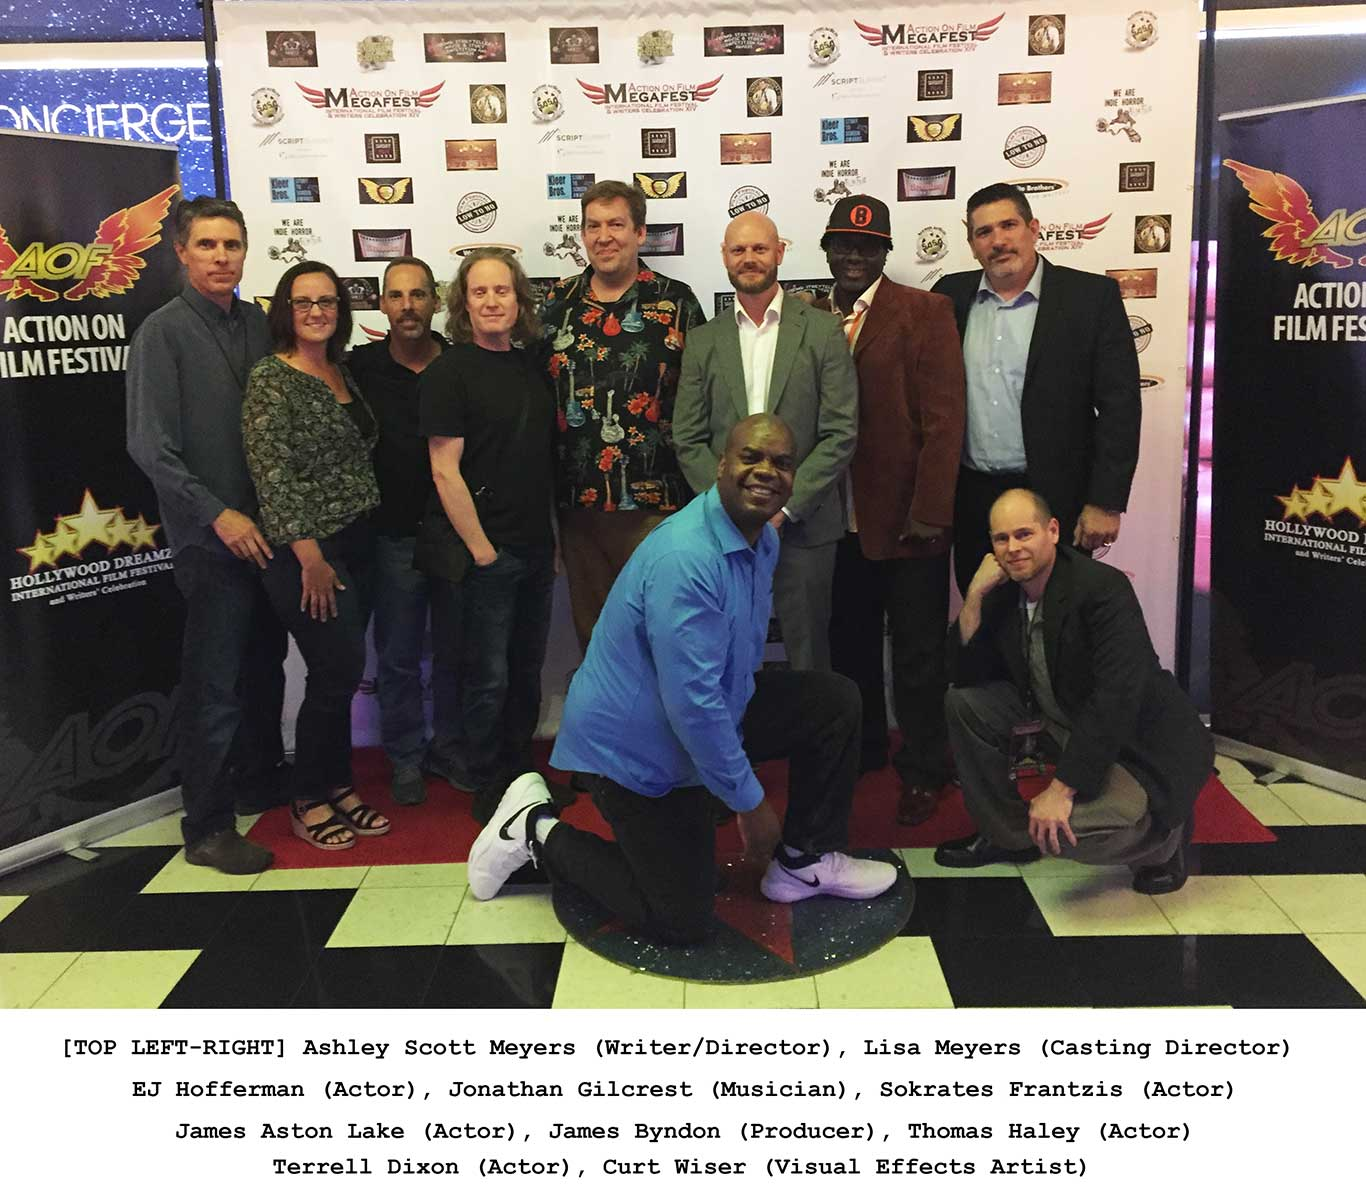 Action on Film Fest - The Pinch - OC Movie Reviews - Movie Reviews, Movie News, Documentary Reviews, Short Films, Short Film Reviews, Trailers, Movie Trailers, Interviews, film reviews, film news, hollywood, indie films, documentaries, TV shows